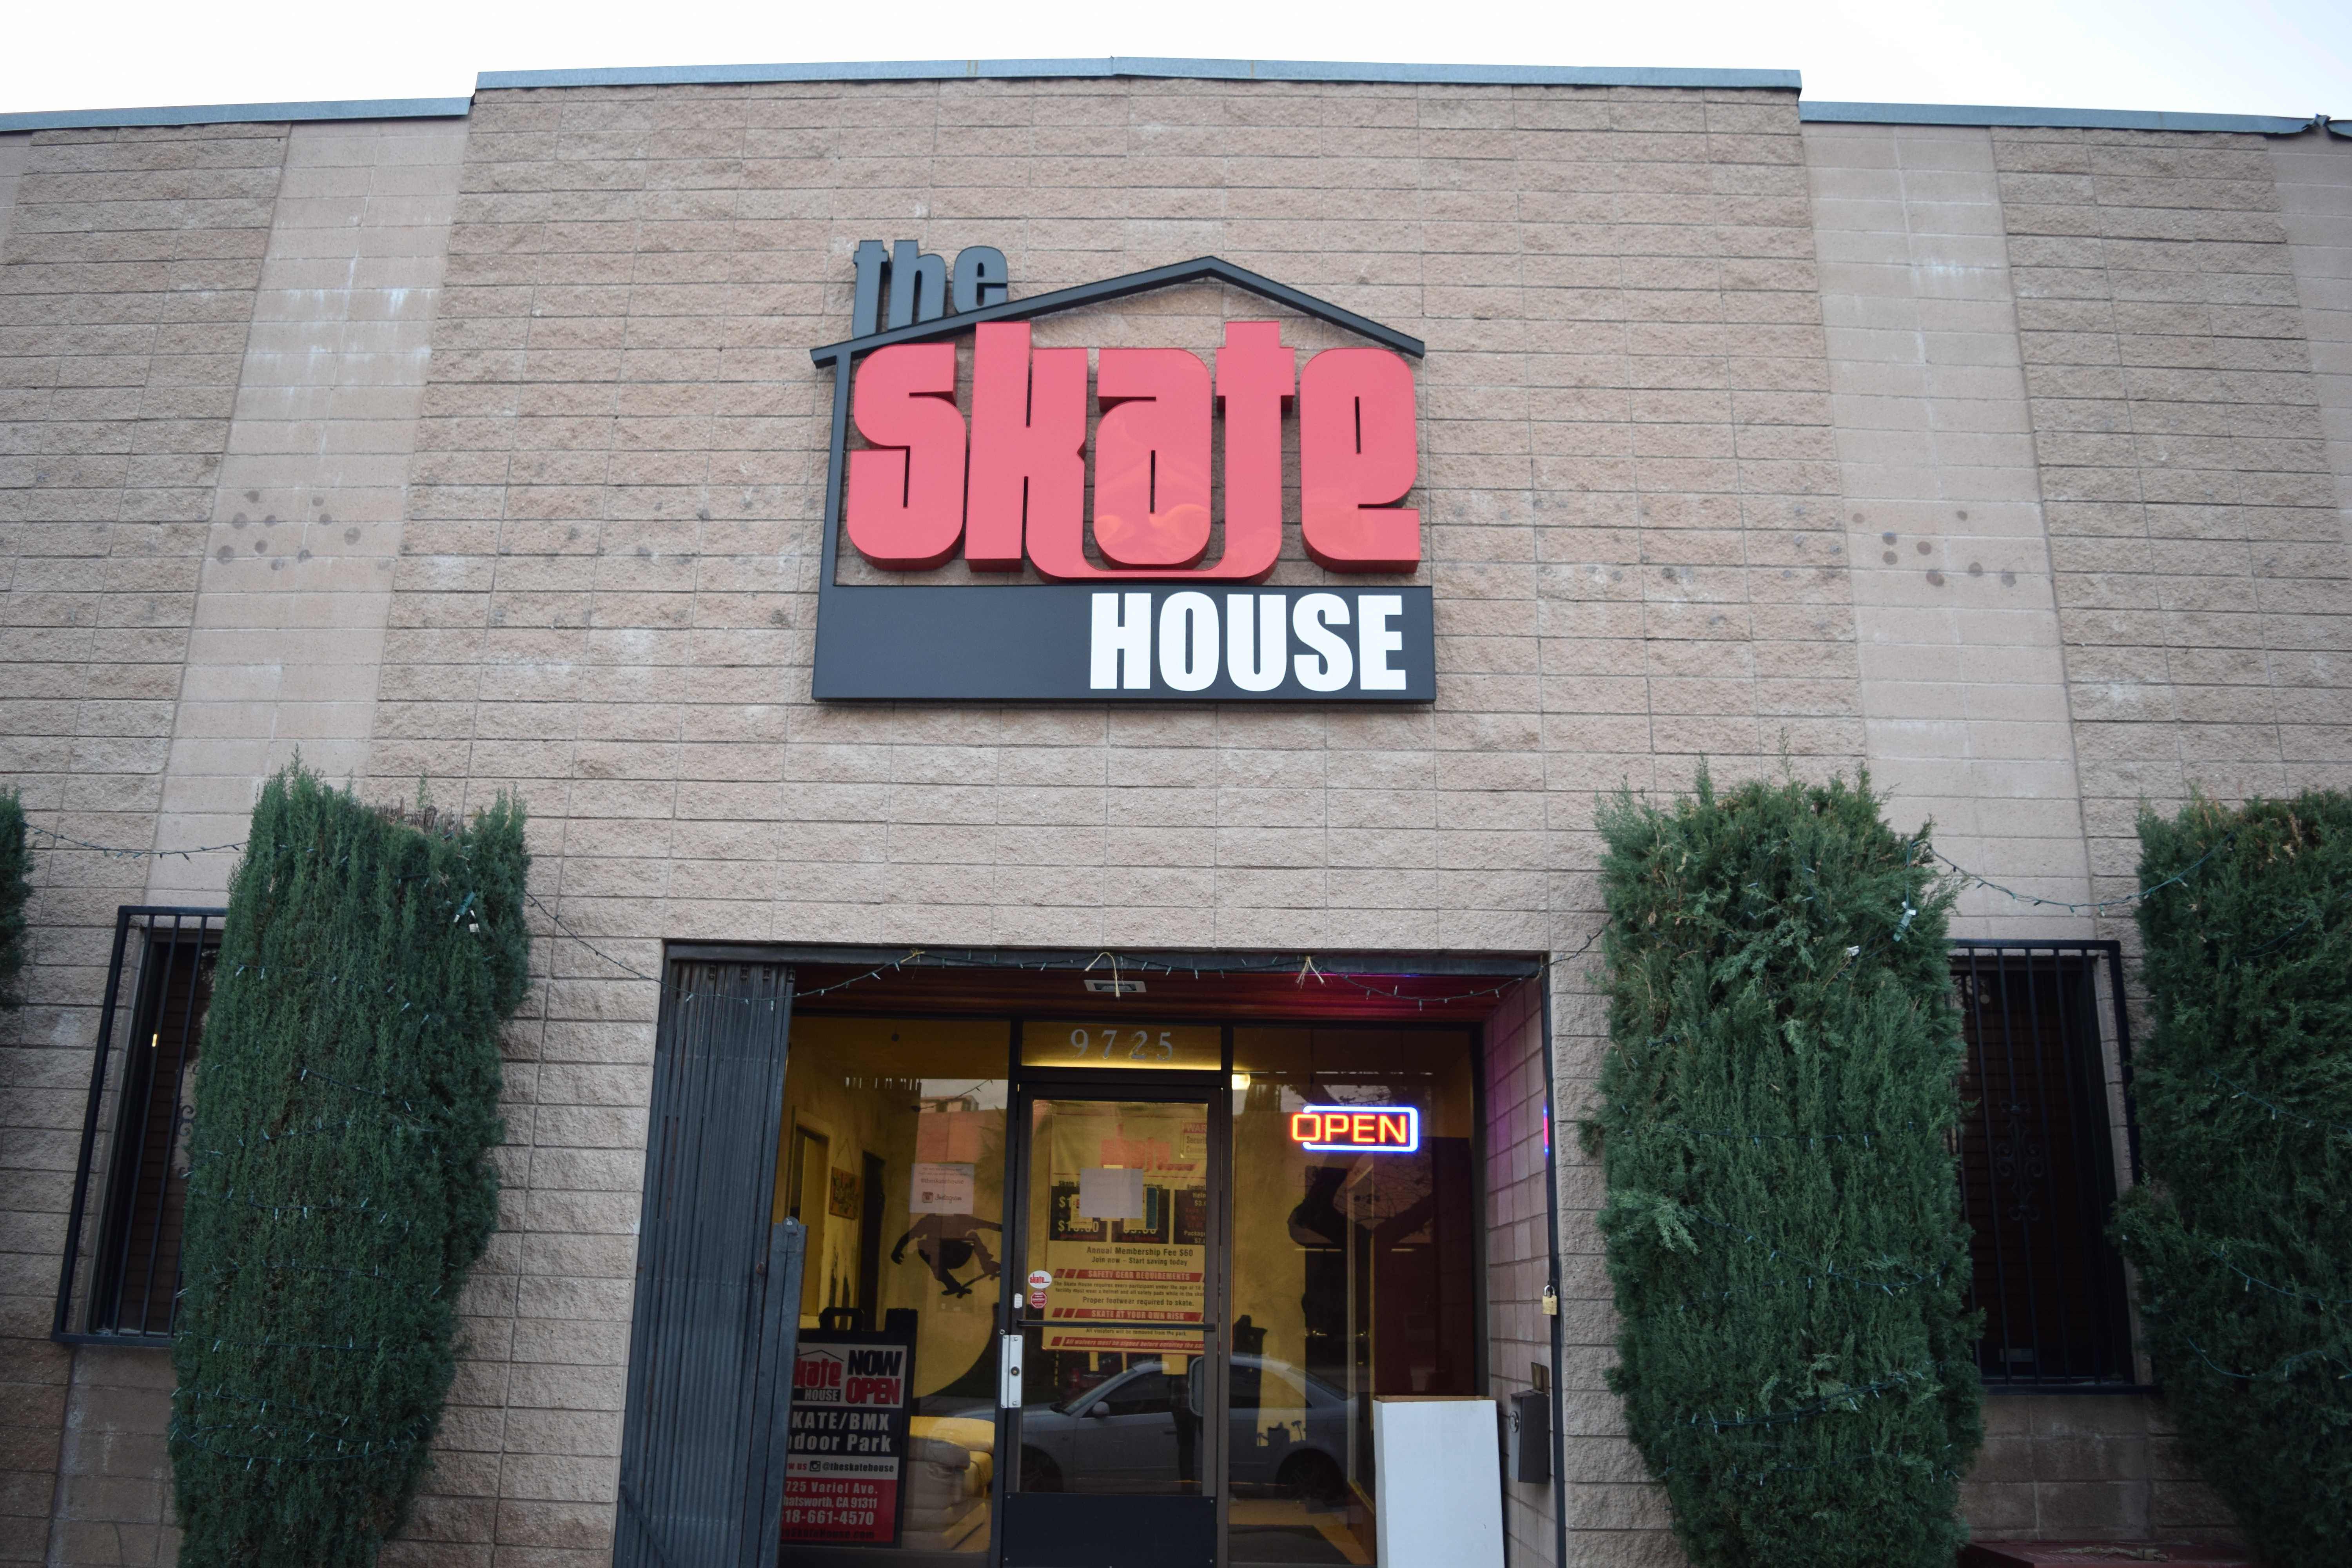 The Skate House: A Local Treasure